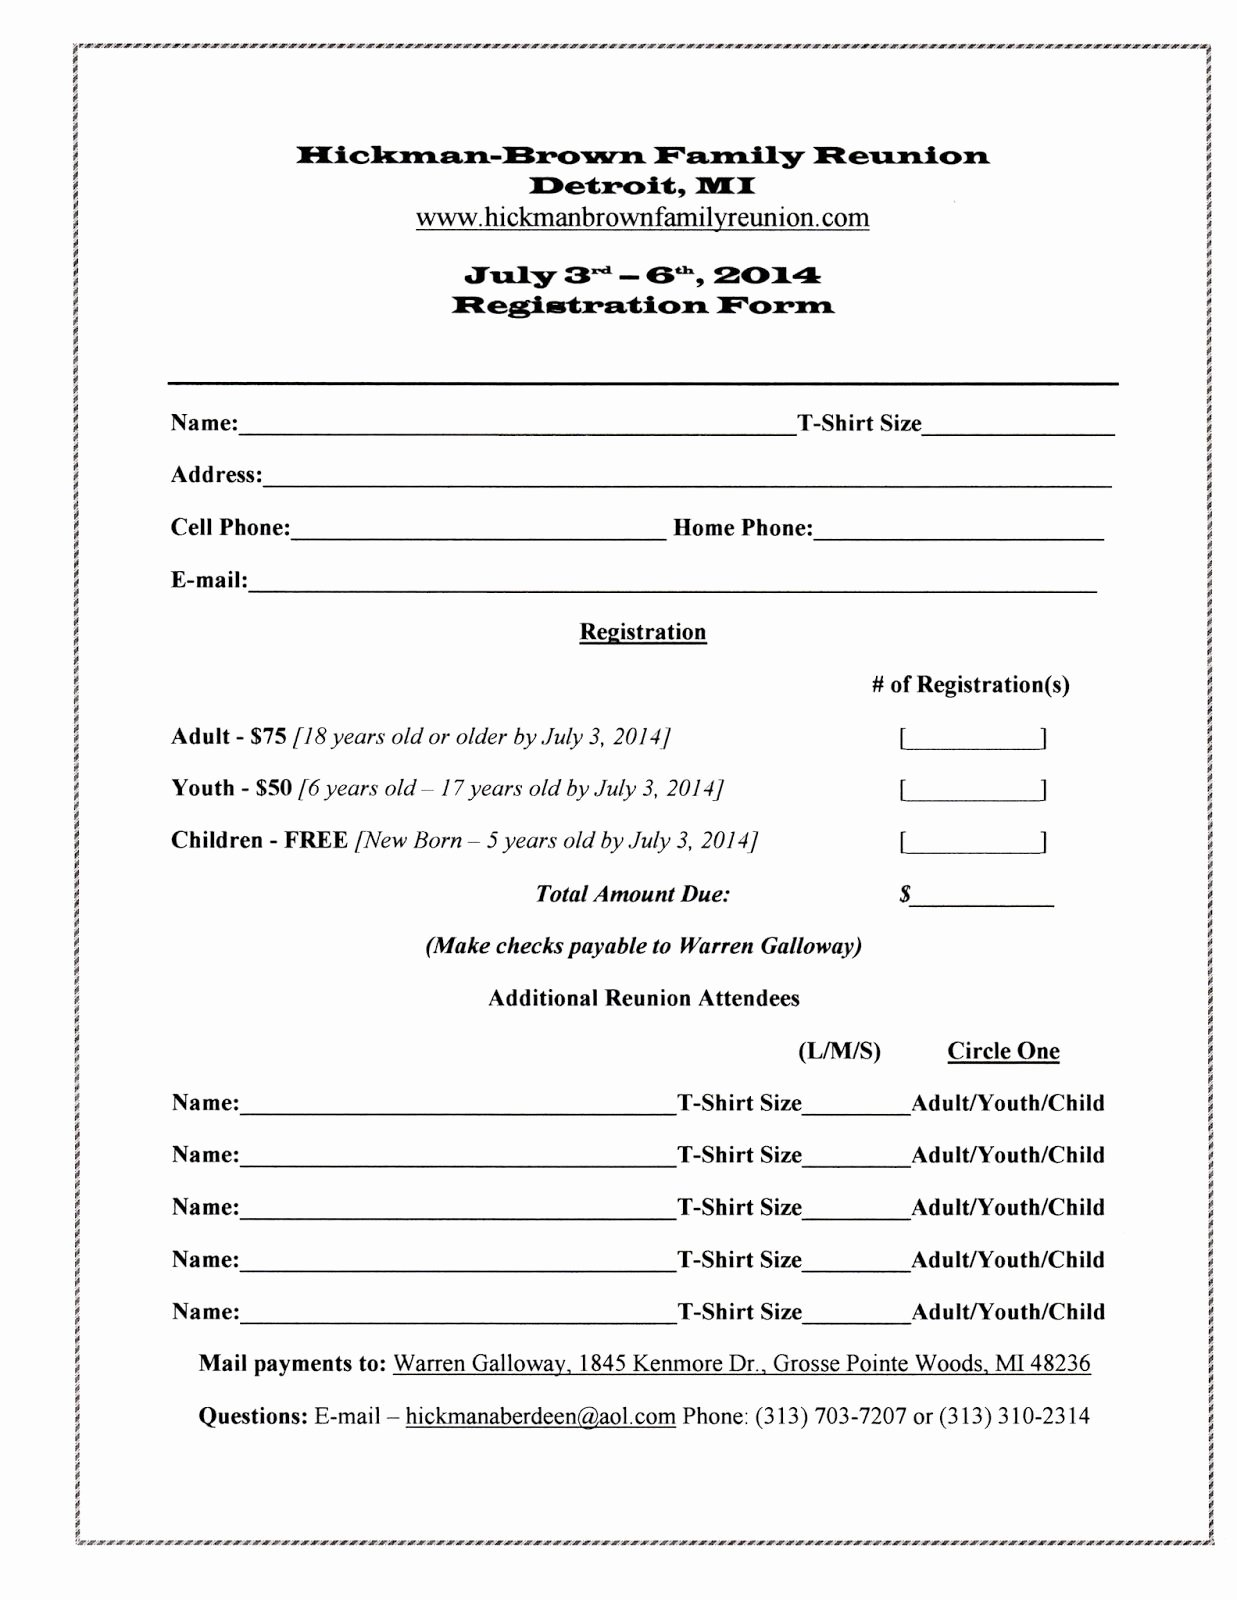 School Registration forms Template Elegant Family Reunion Registration form Template